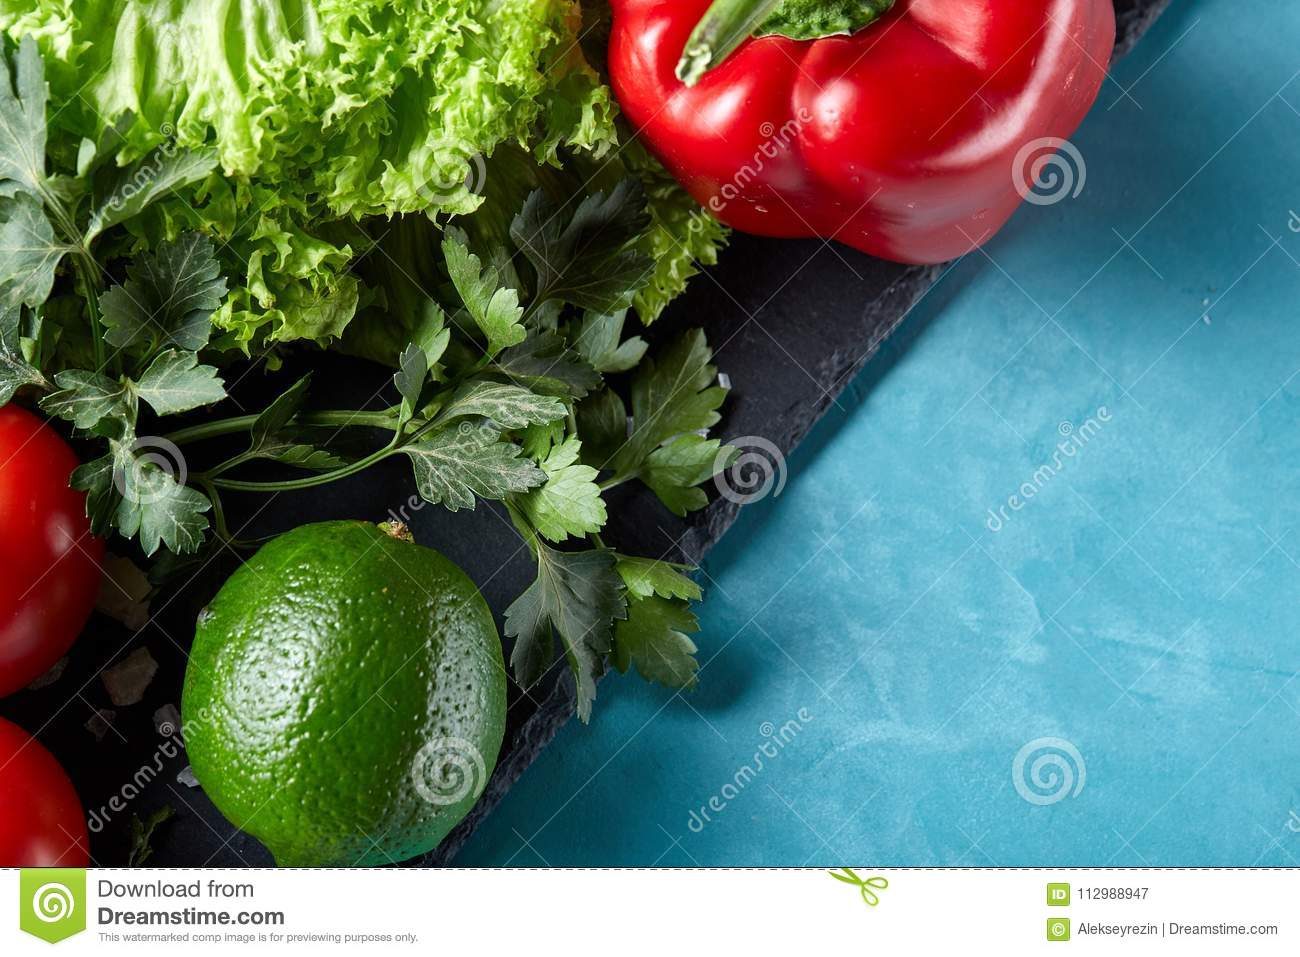 Still life of fresh organic vegetables on wooden plate over blue background, selective focus, close-up